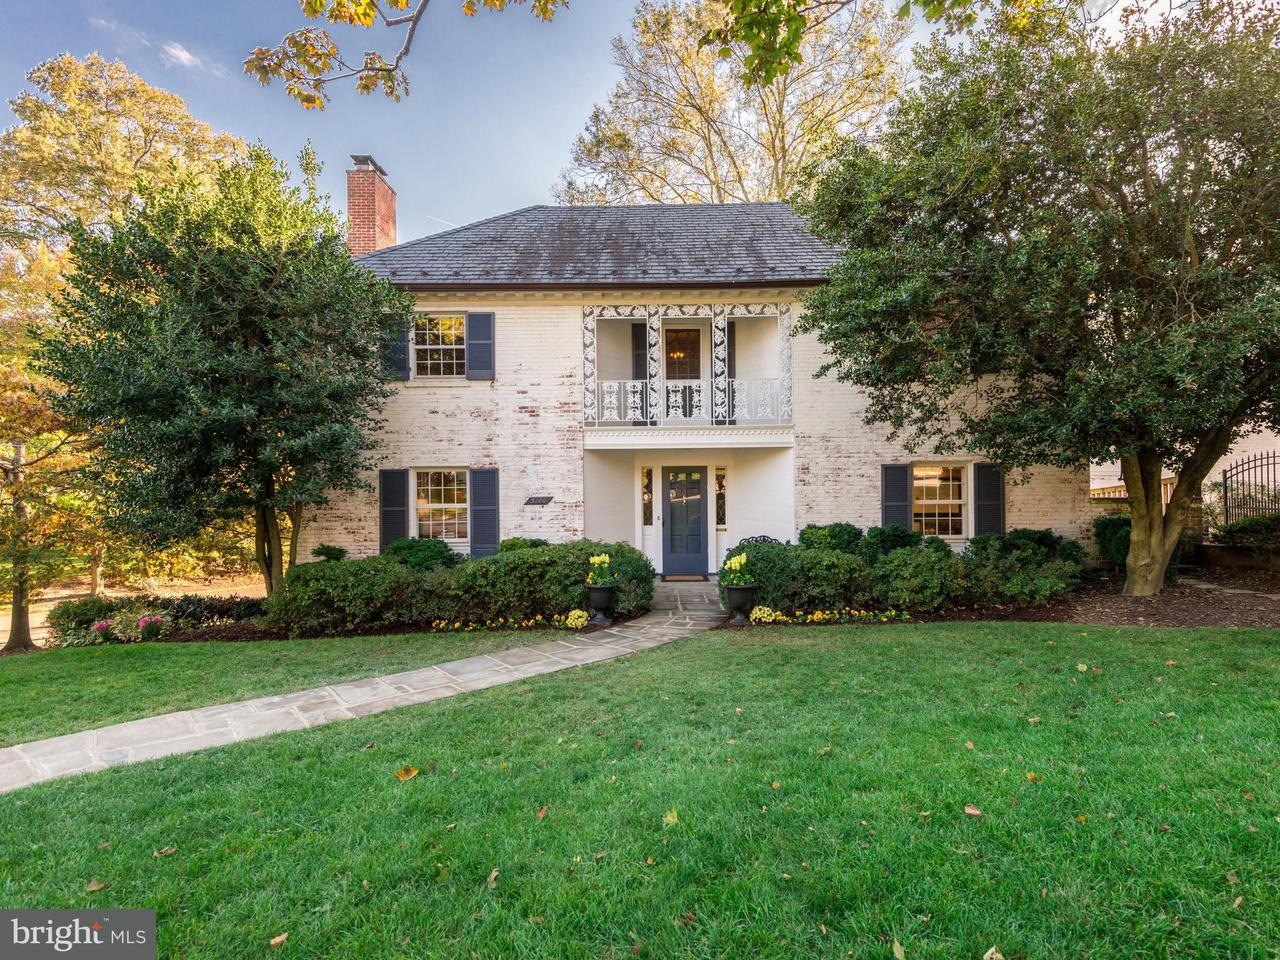 Single Family Home for Sale at 5100 WATSON ST NW 5100 WATSON ST NW Washington, District Of Columbia 20016 United States